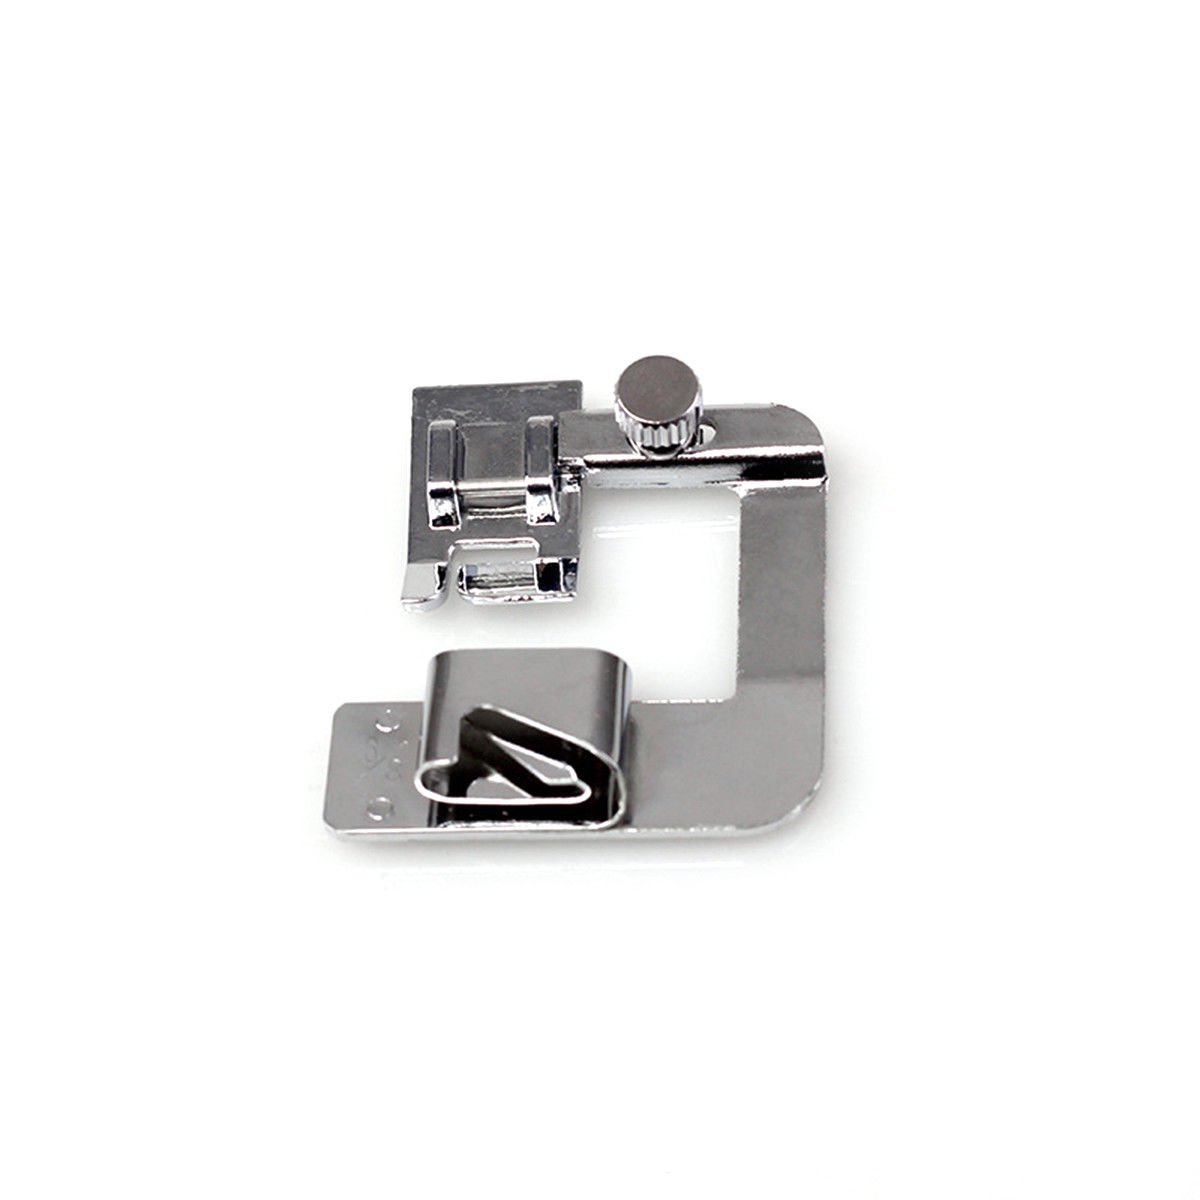 3 Pcs Sewing Machine Presser Foot 8/8 6/8 4/8 for Baby Lock Brother Janome